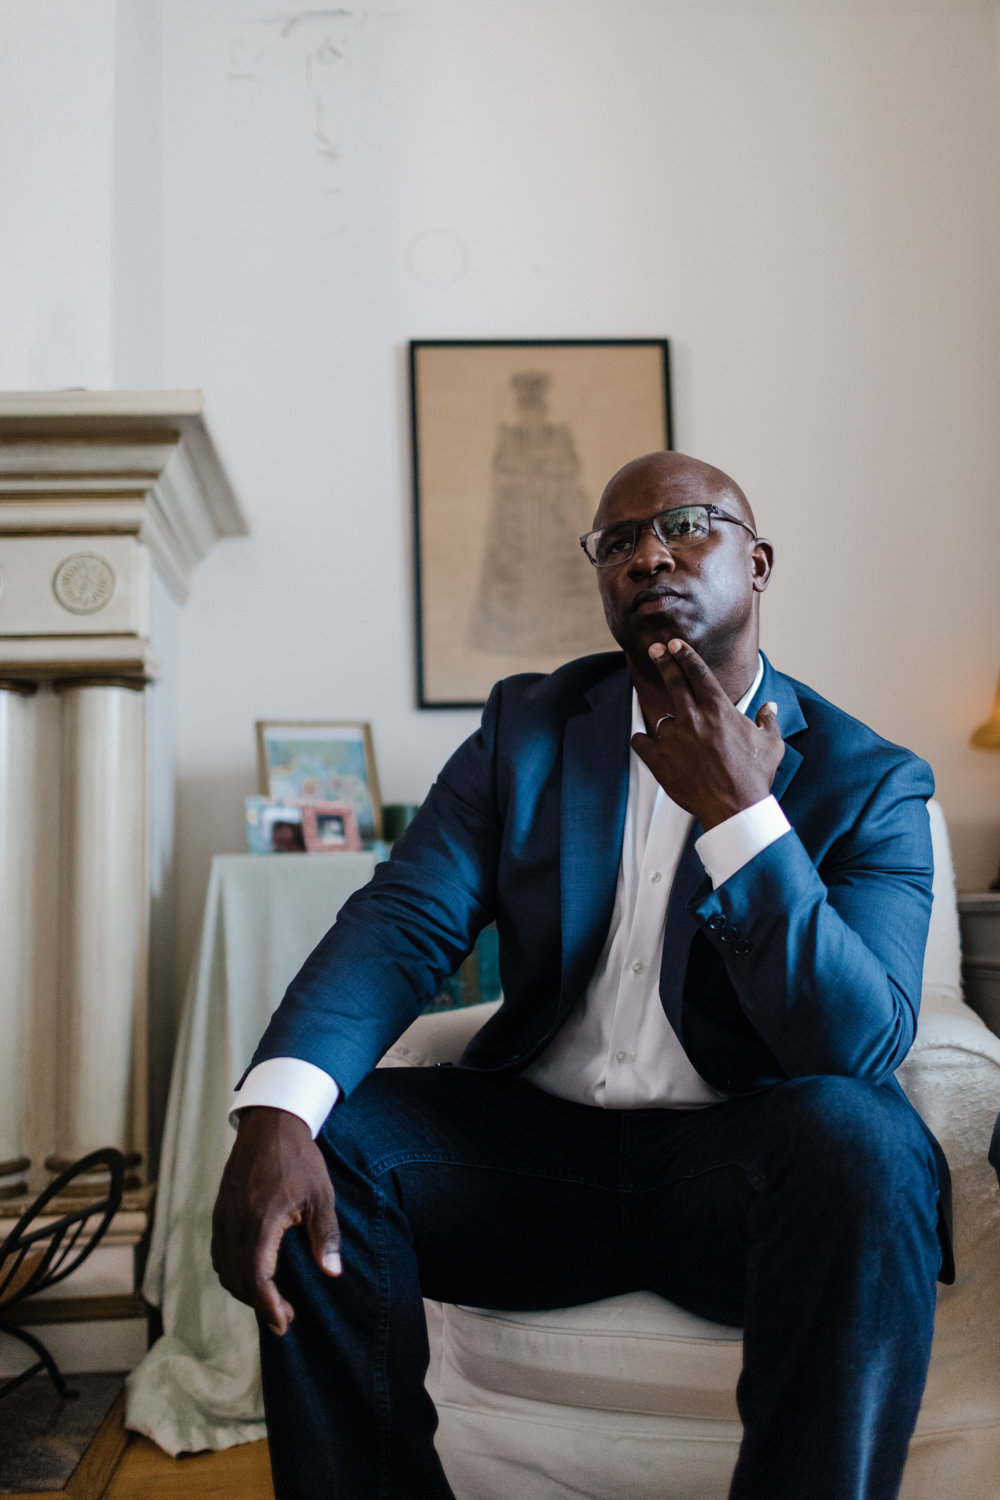 Health care and criminal justice reform are key pillars of Jamaal Bowman's campaign platform. He looks to unseat U.S. Rep. Eliot Engel in the upcoming Democratic primary on June 23.